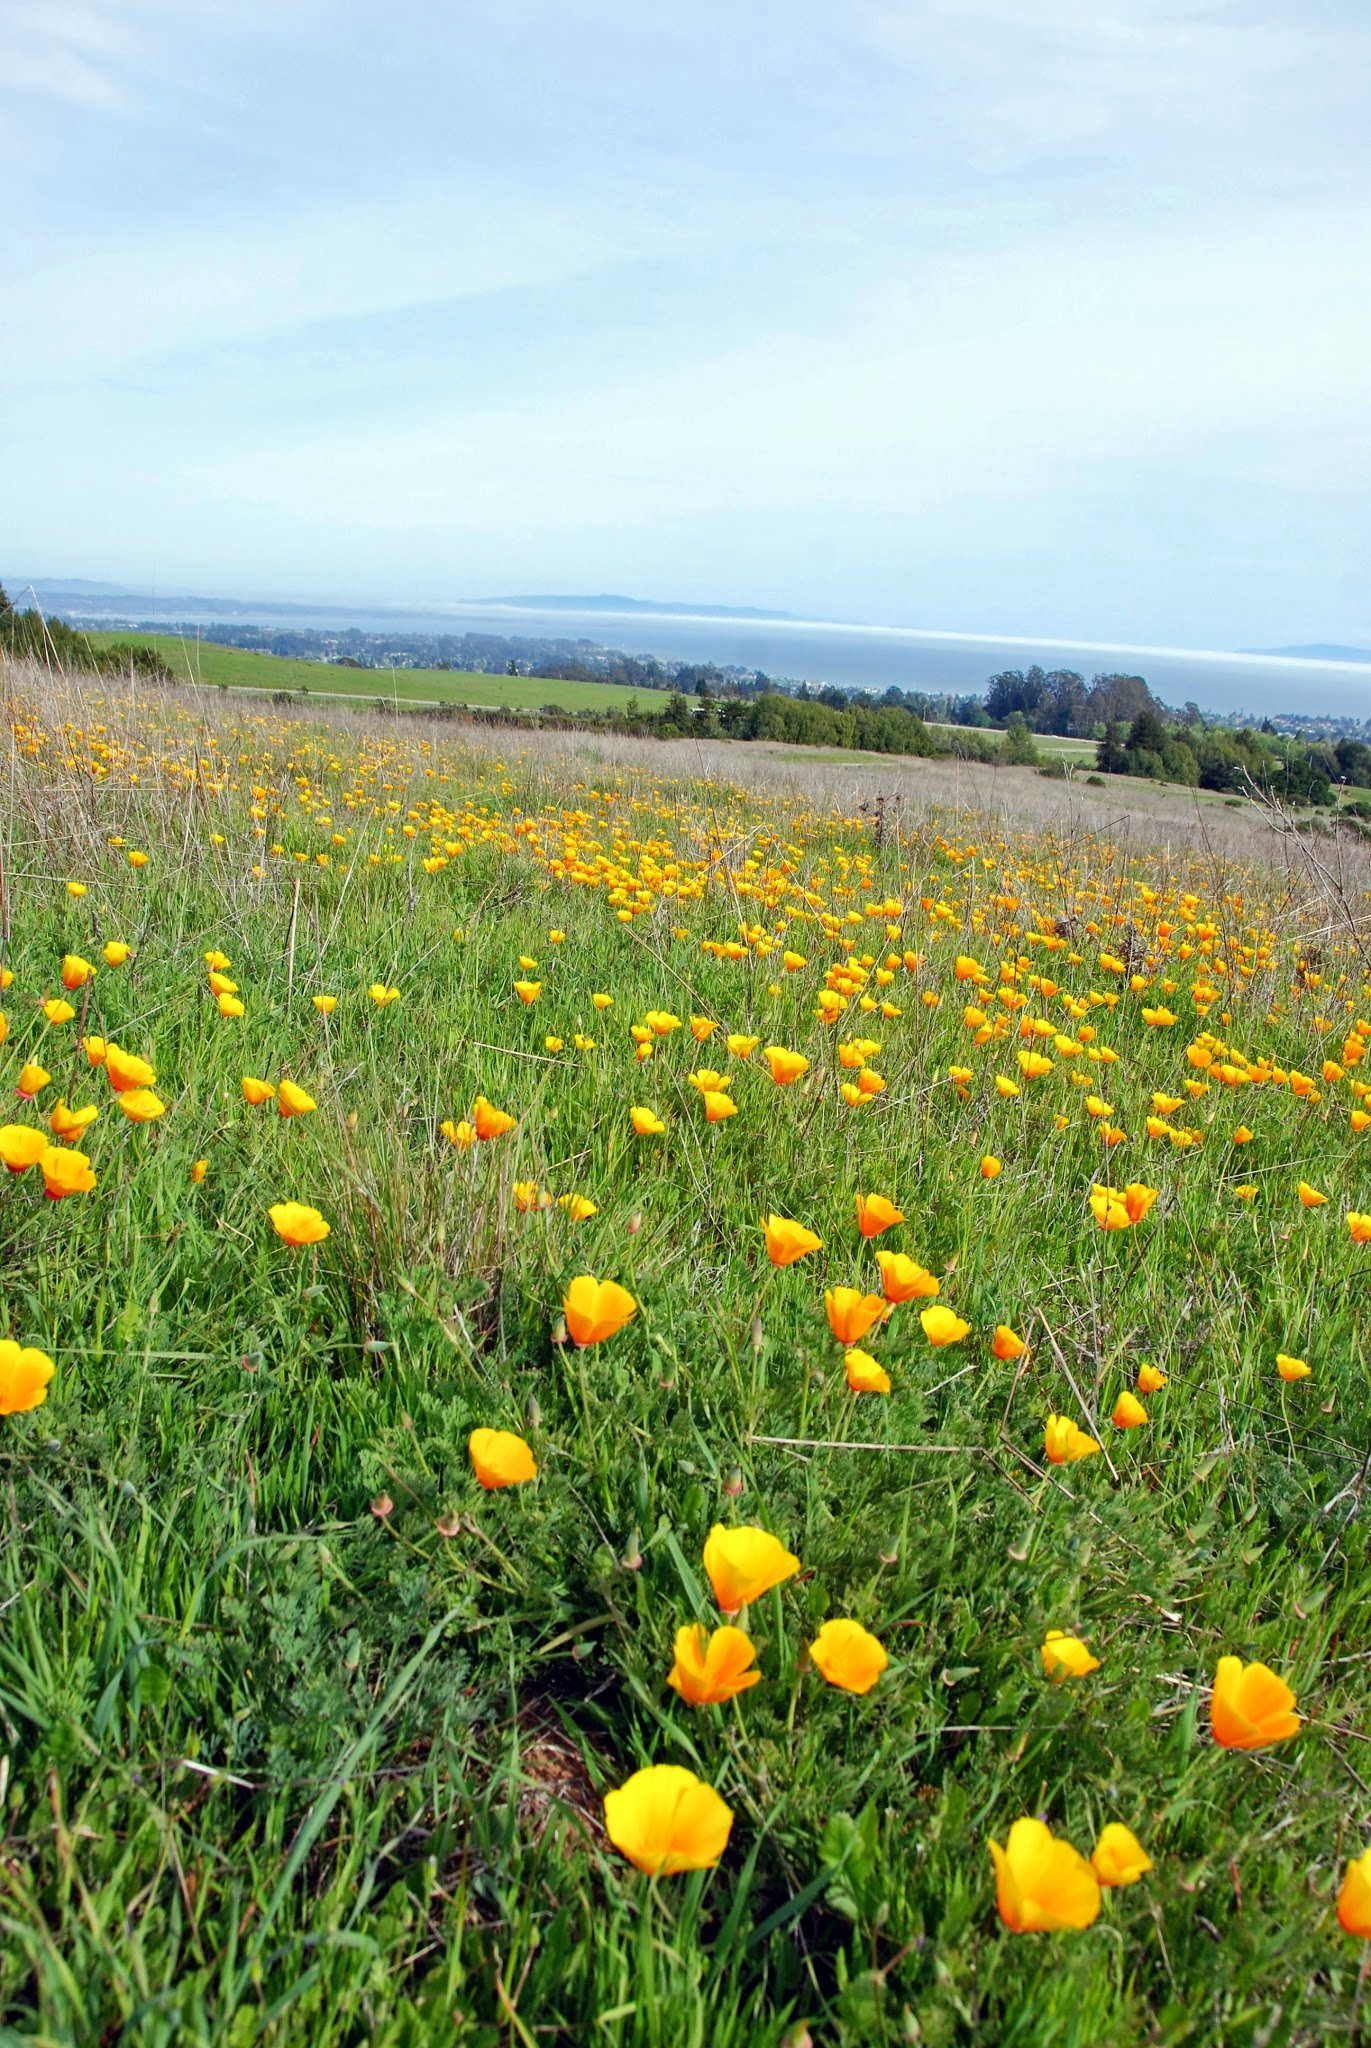 An explosion of rare California poppies in the Great Meadow on the UC Santa Cruz campus. Photographer Gregory Gilbert.